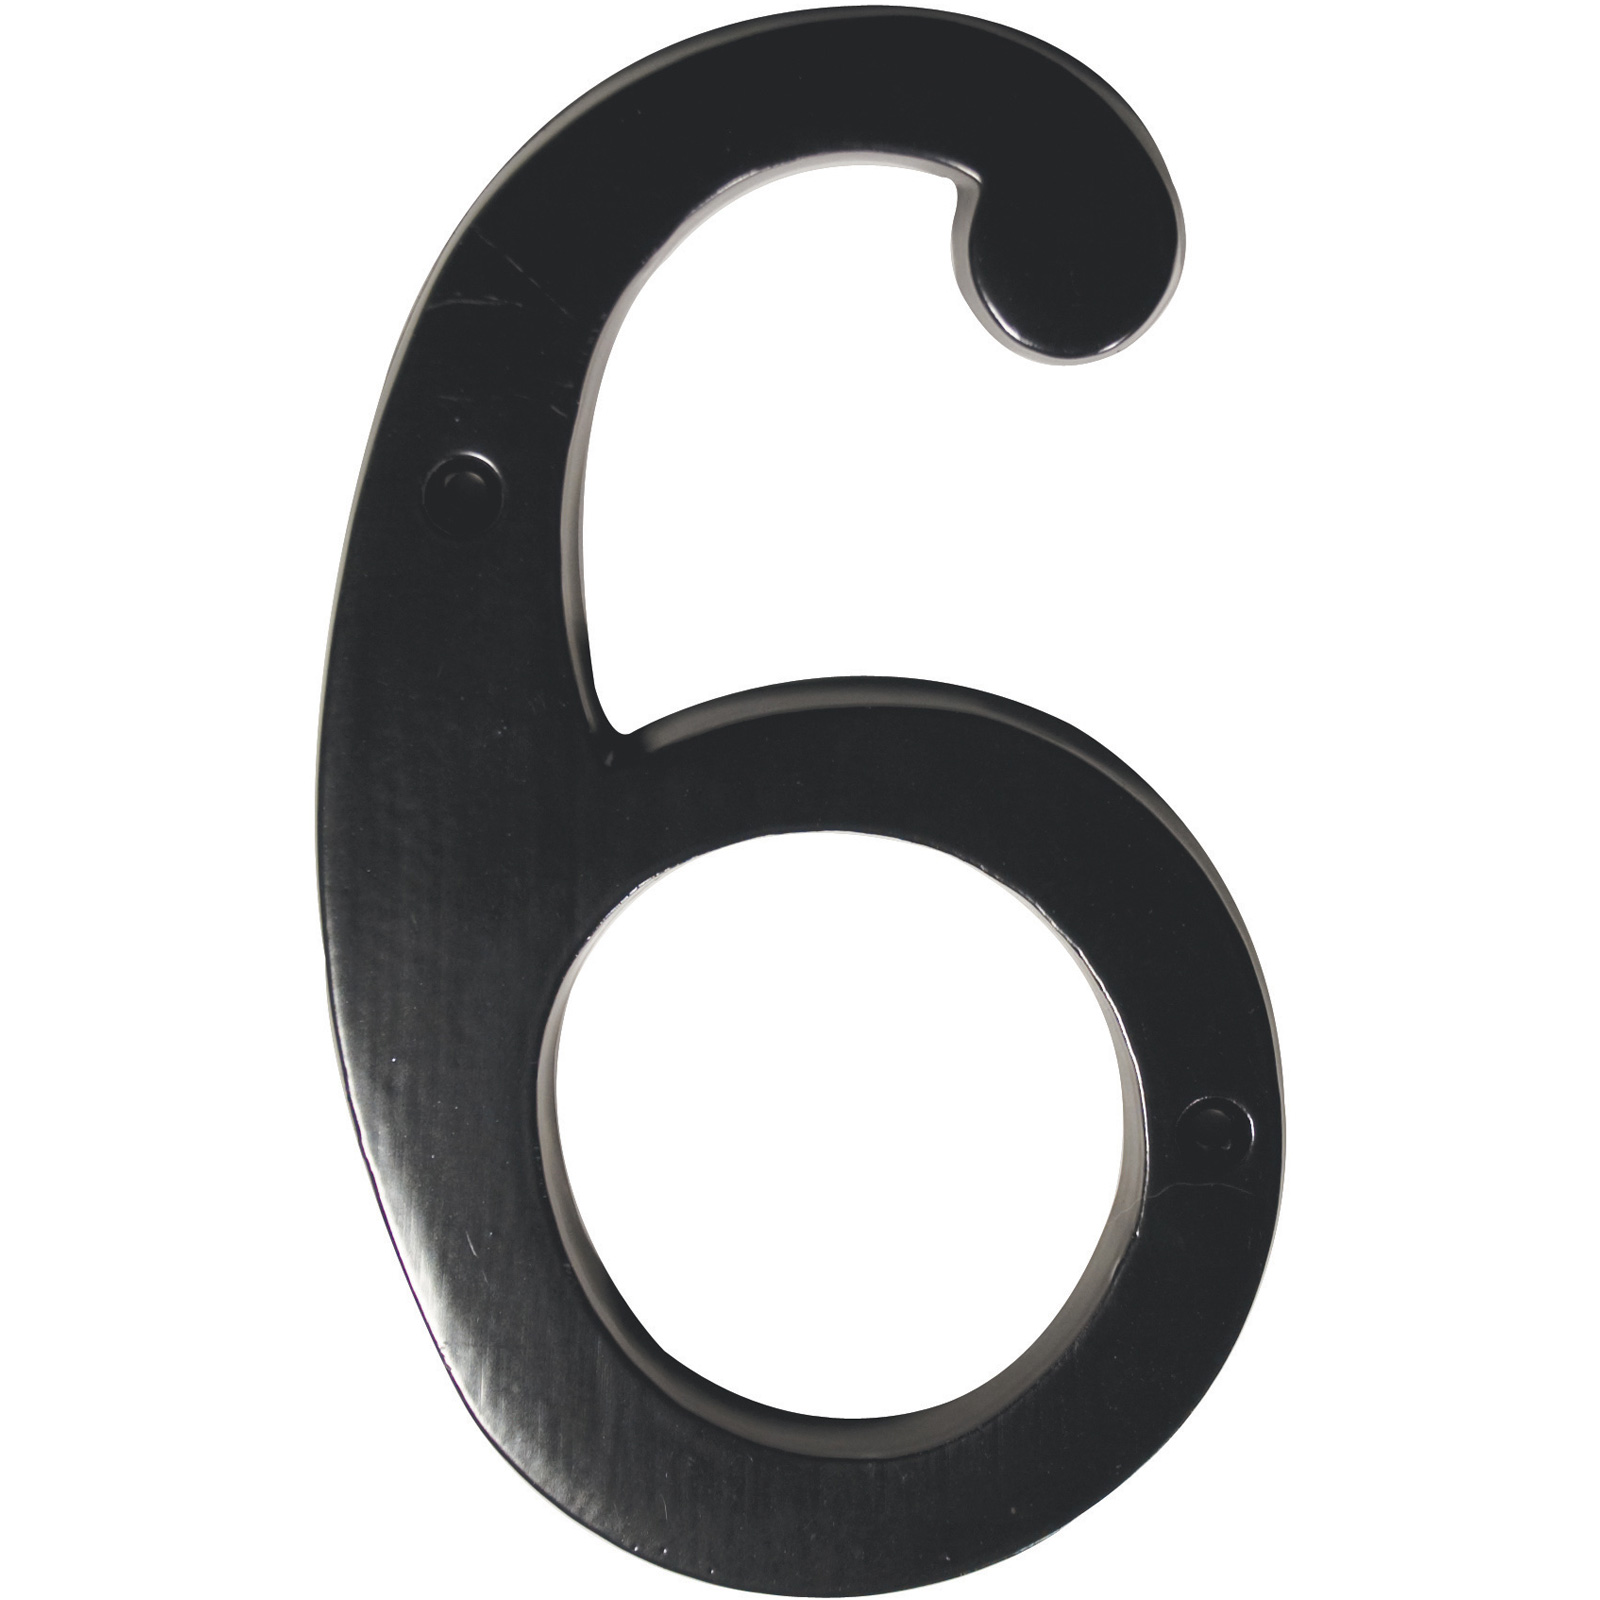 Classic style aluminum house numbers house numbers for Classic house numbers